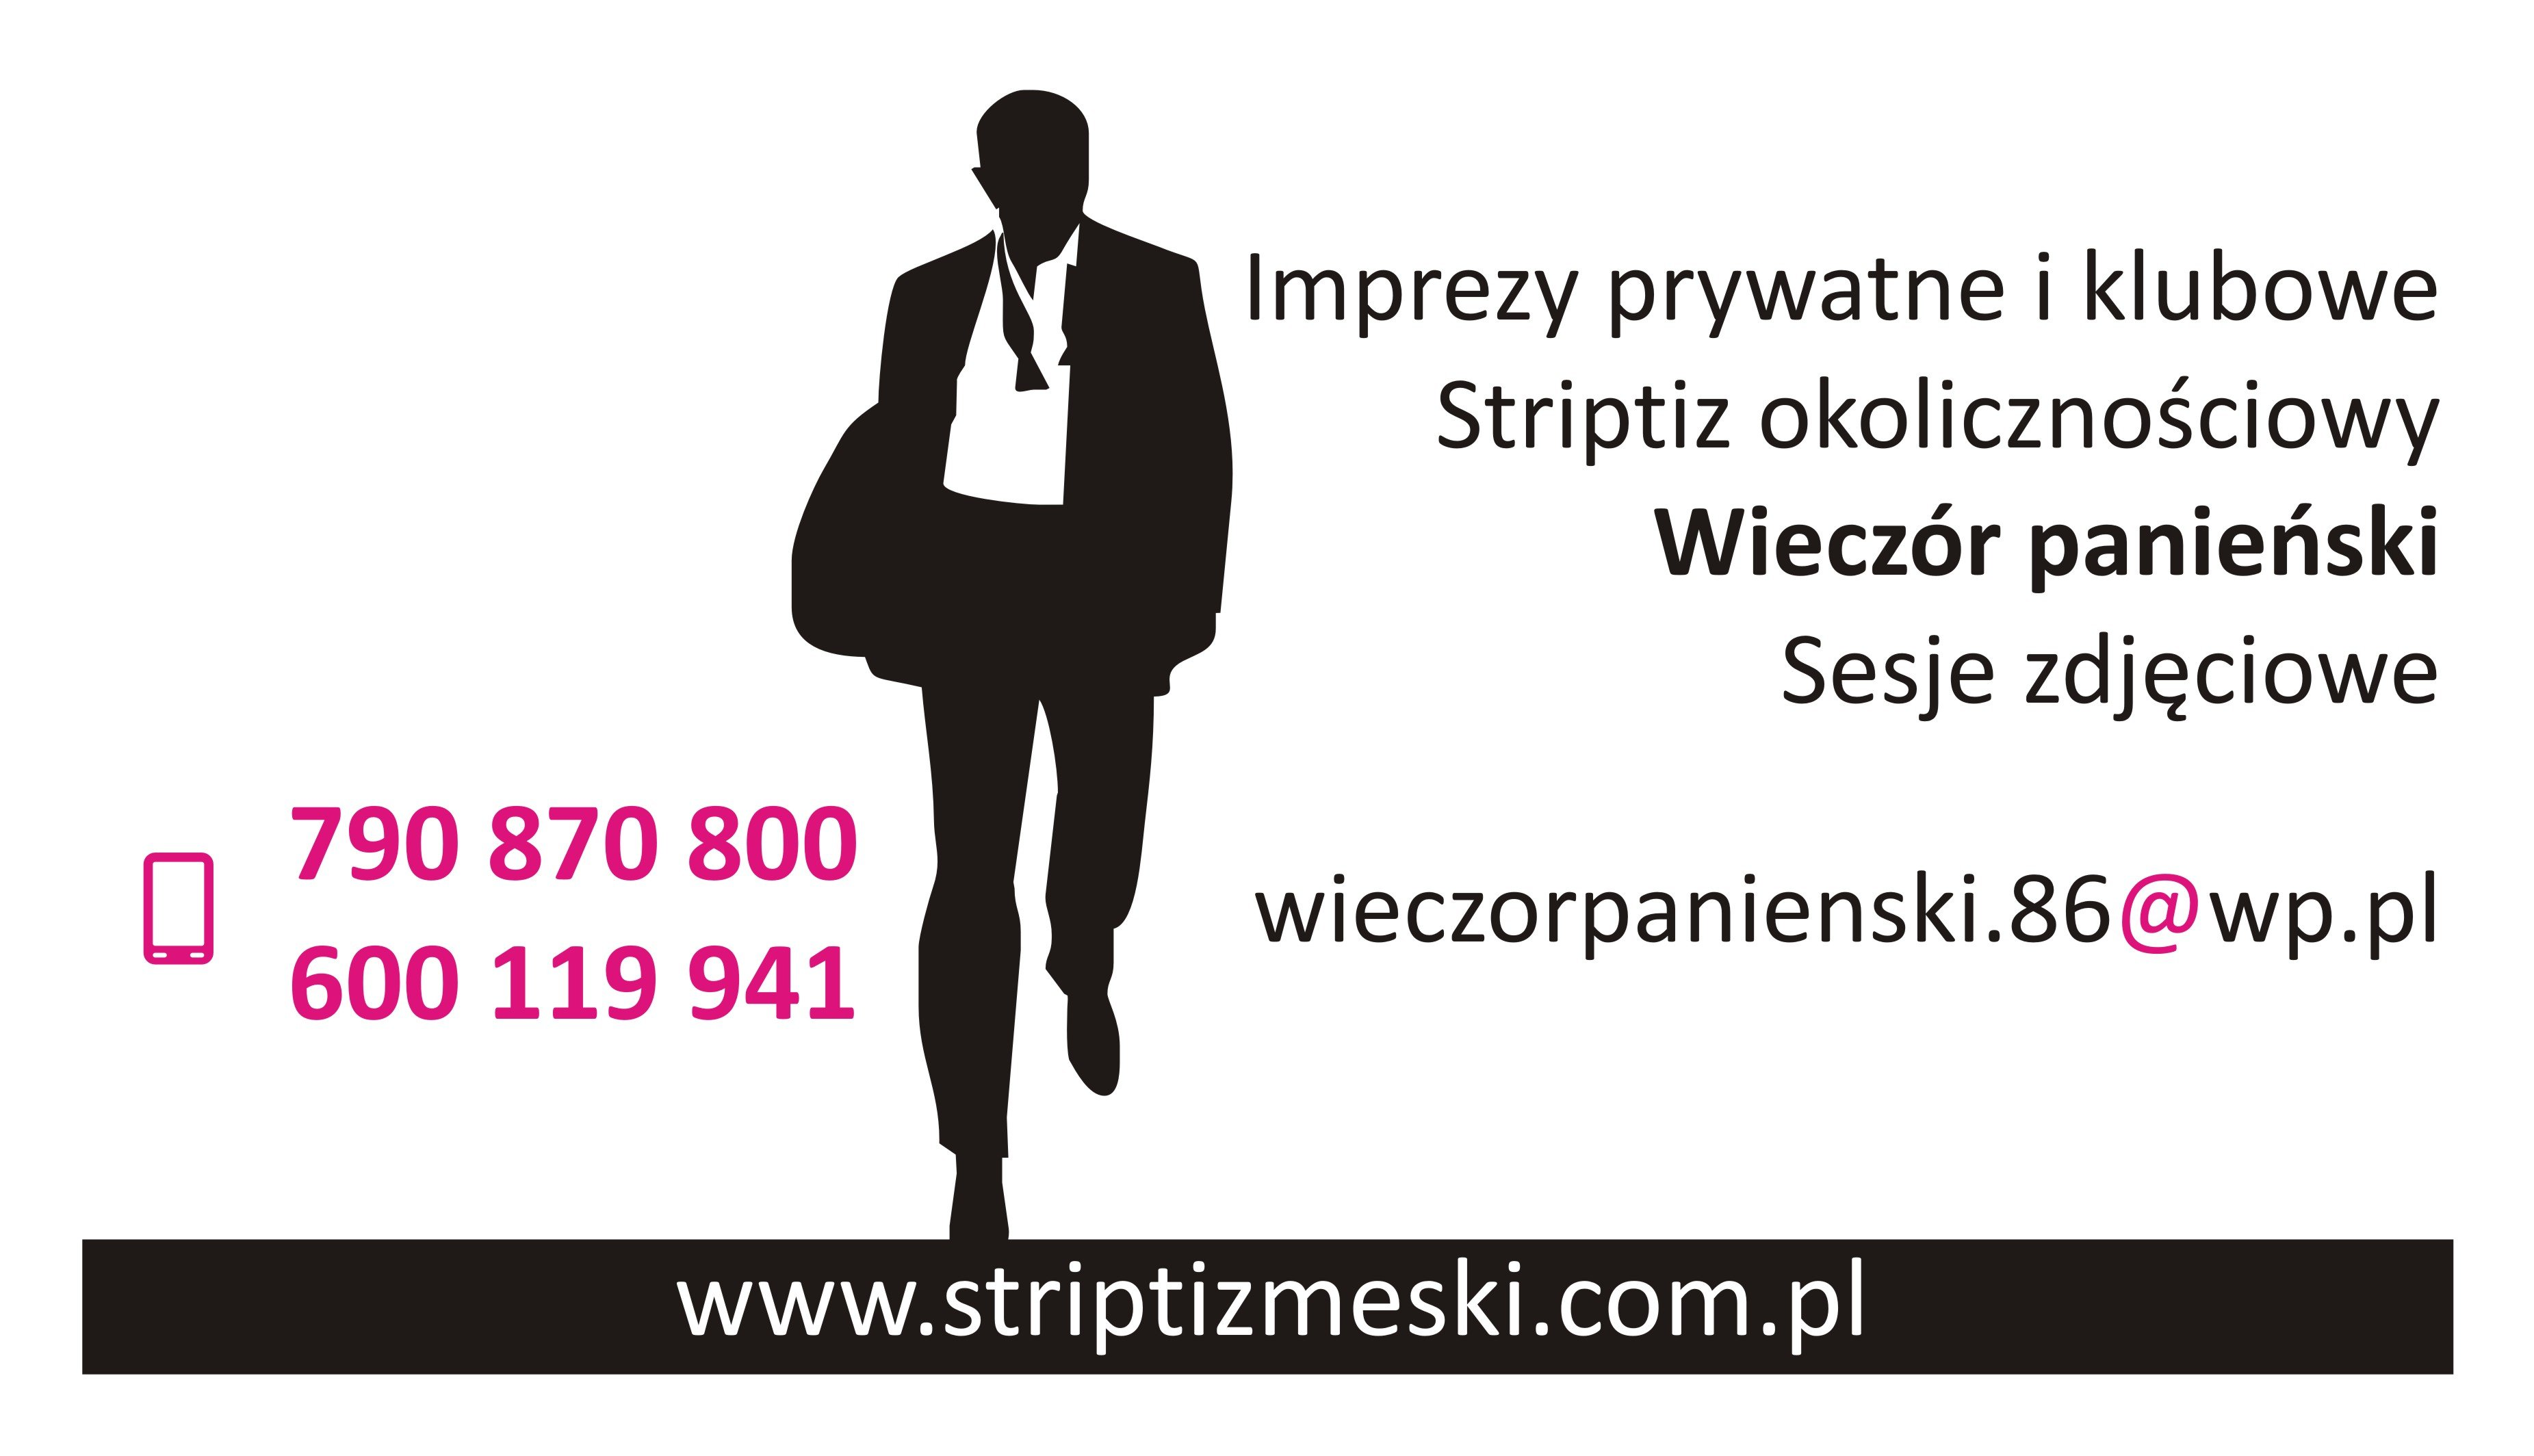 wieczor panienski, stirptizer